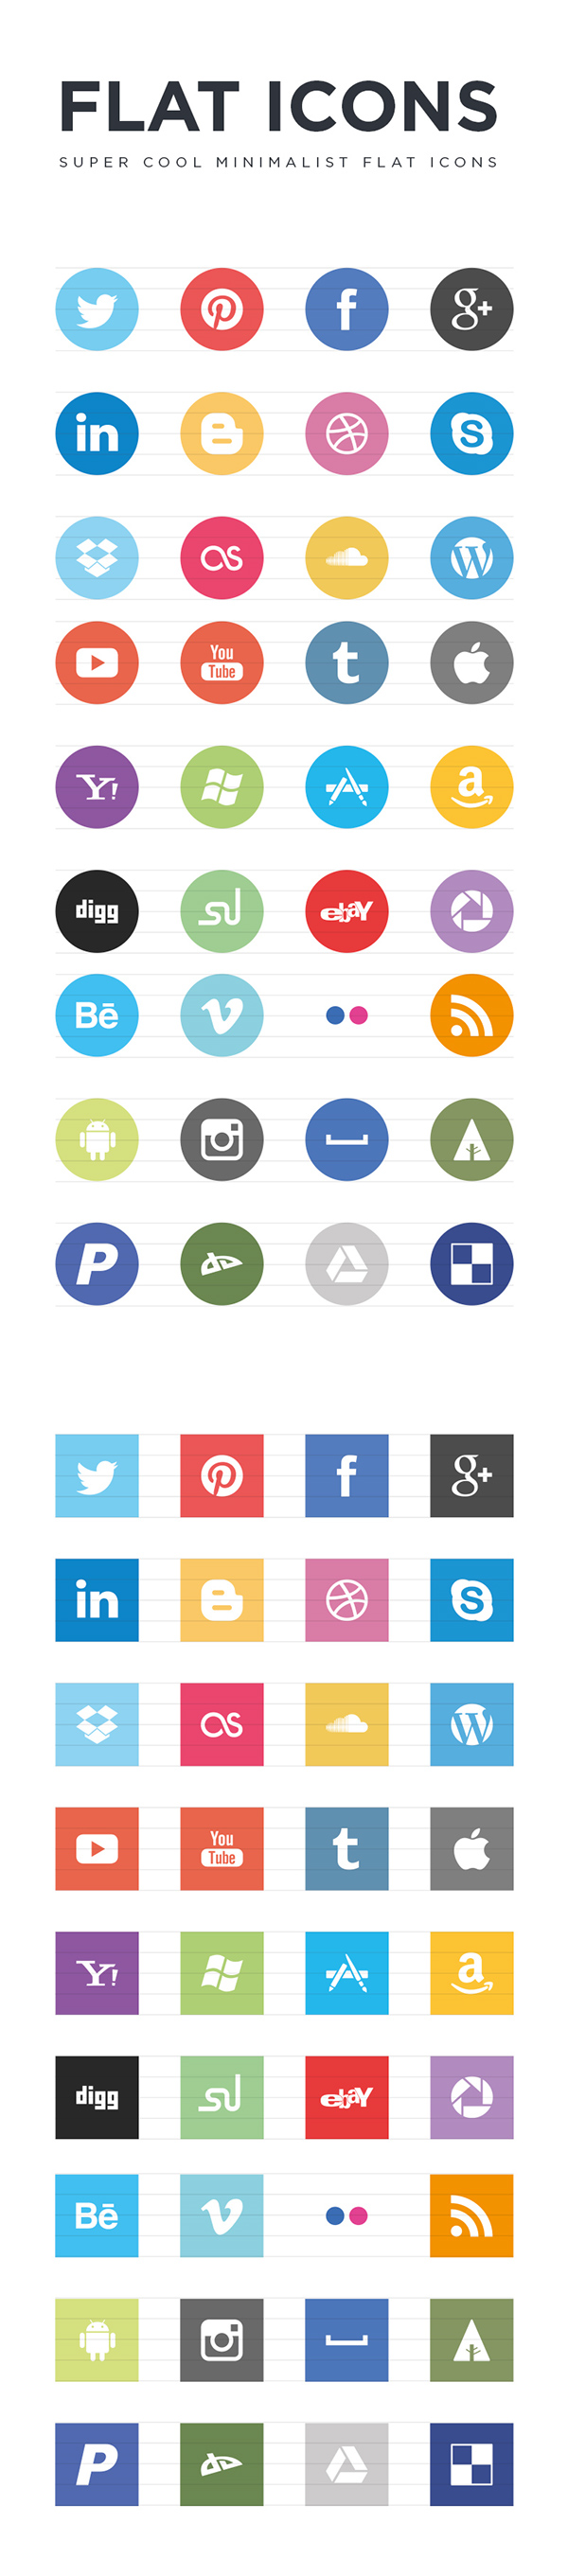 Free Flat Social Icons EPS Web design freebies, Web